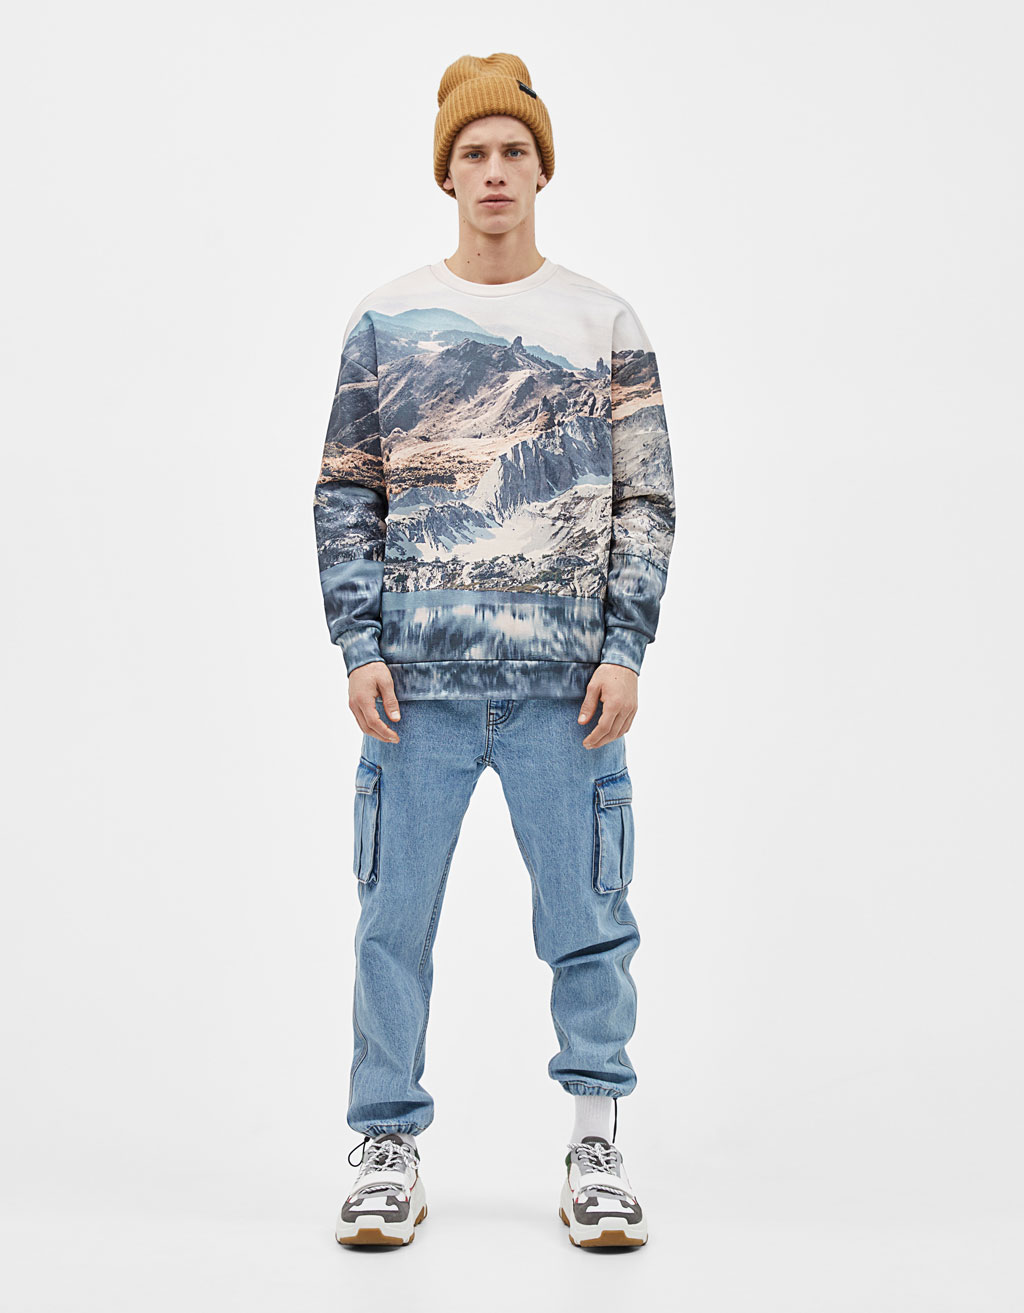 Sweatshirt with photo print